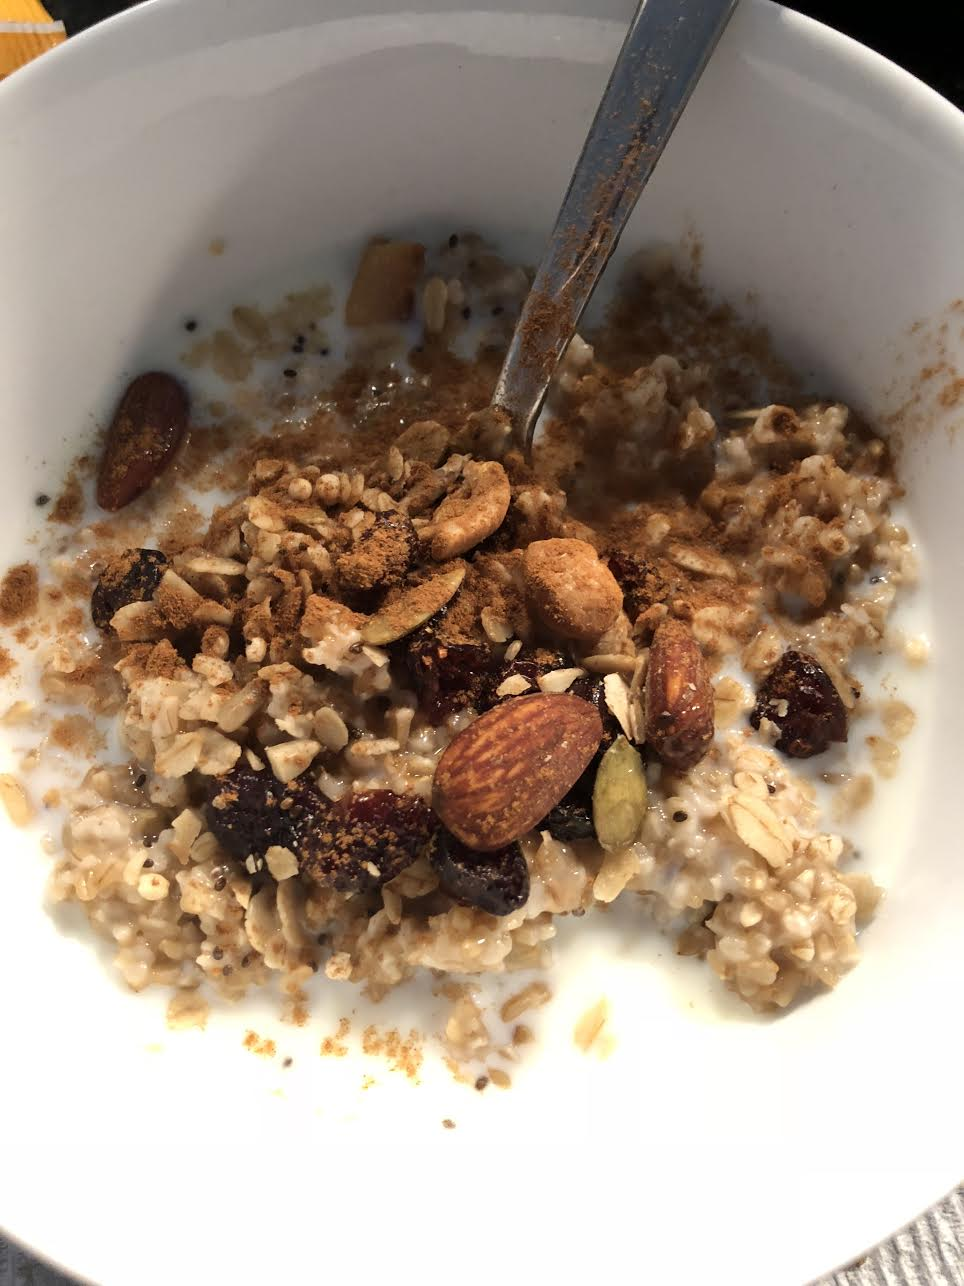 Oatmeal - Time: 12 minutes